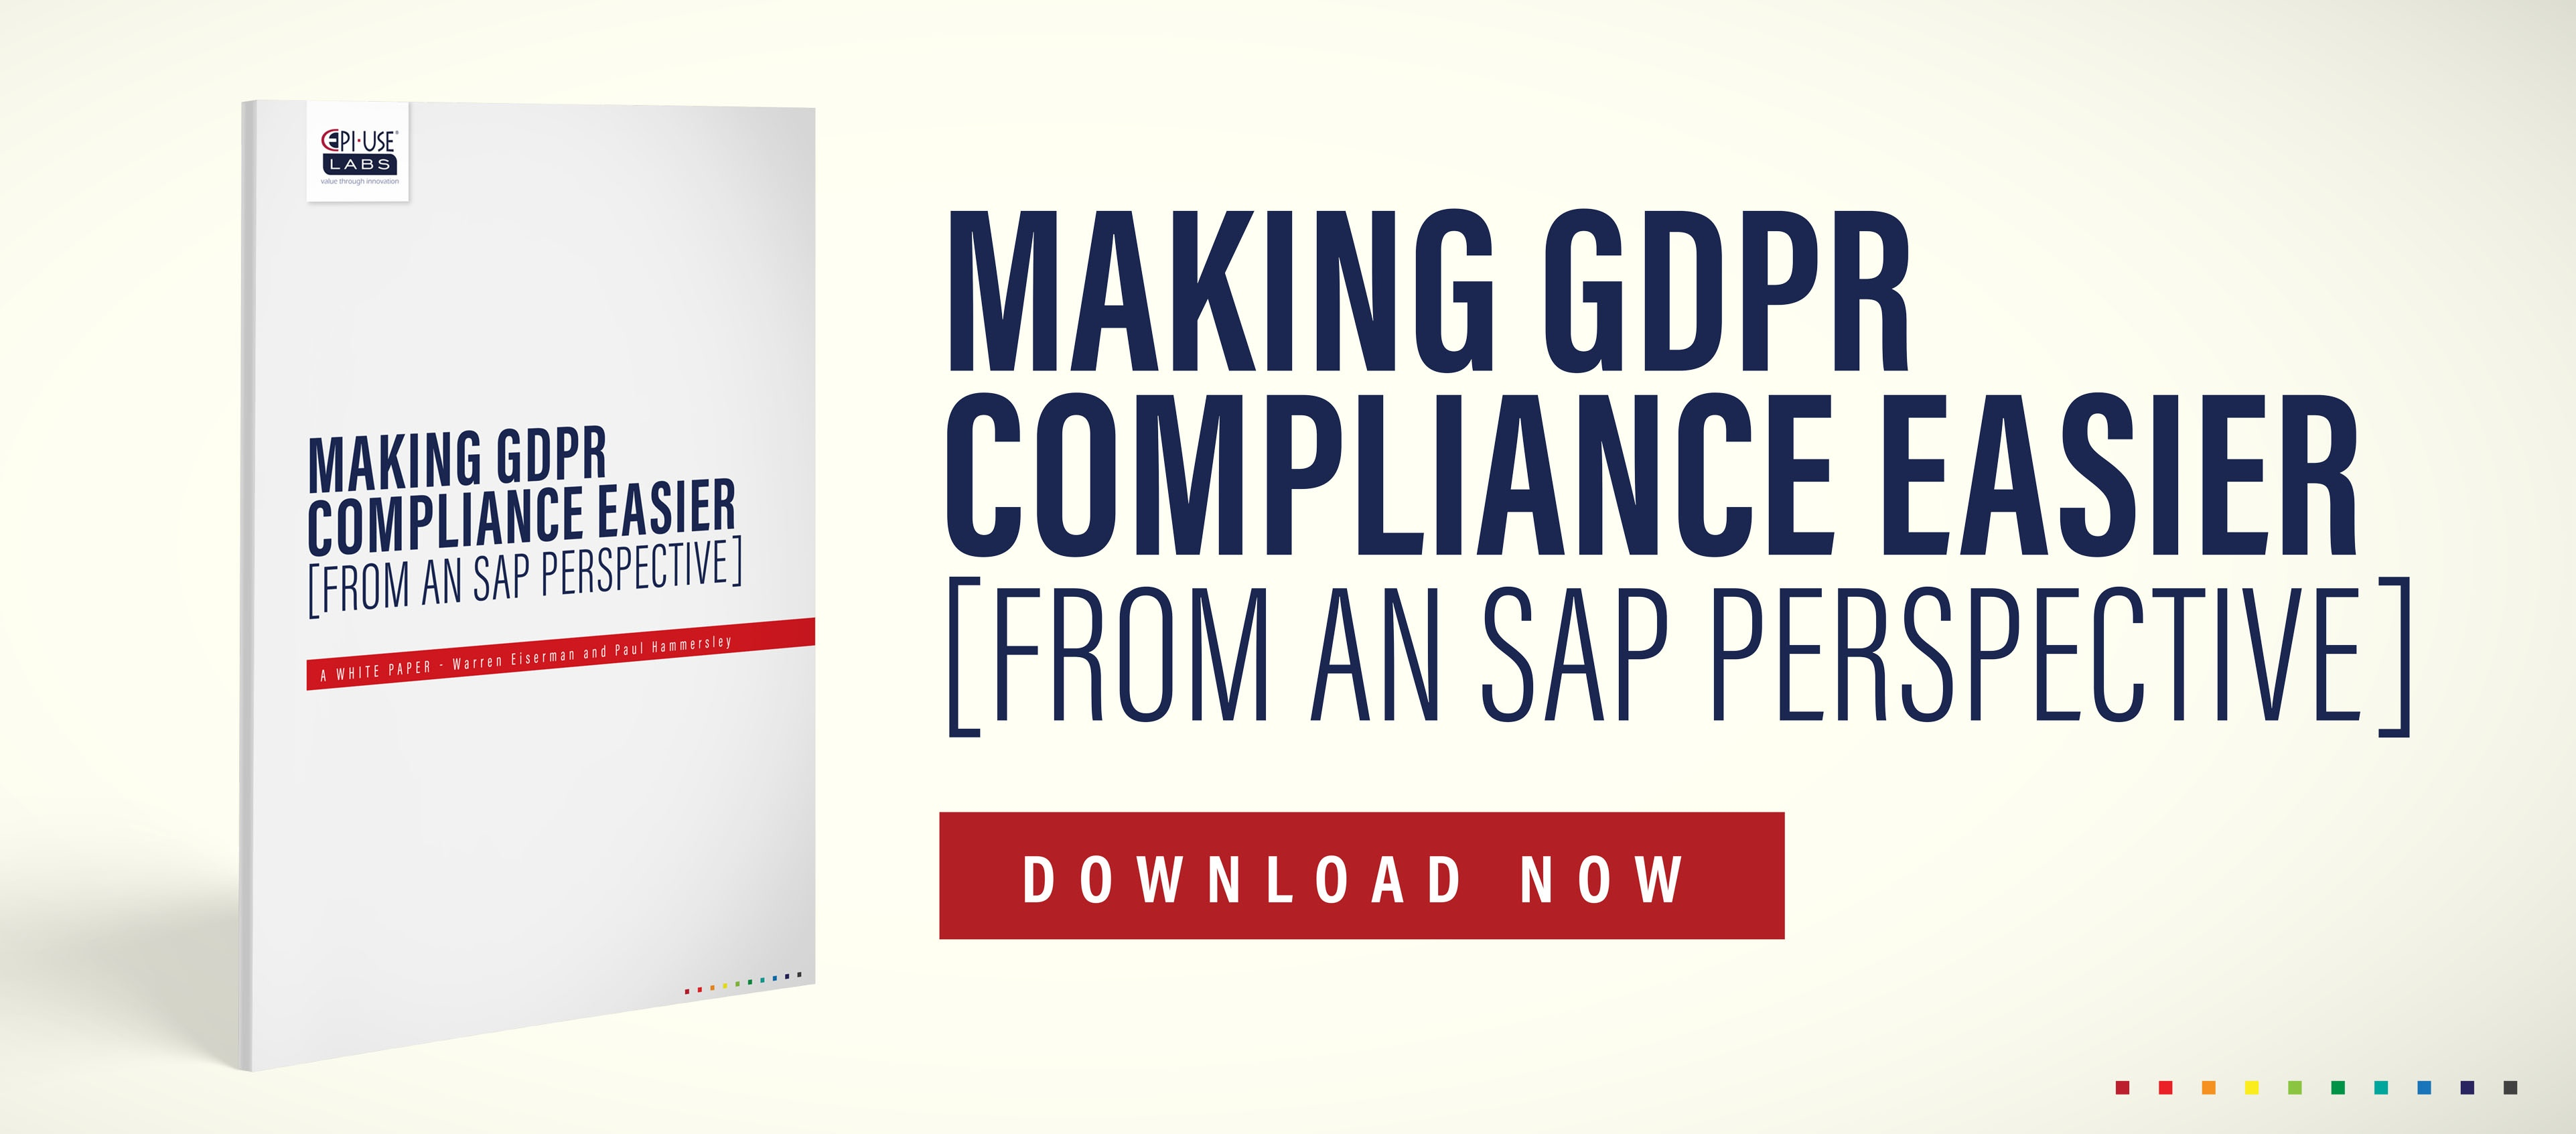 Making GDPR Compliance easier